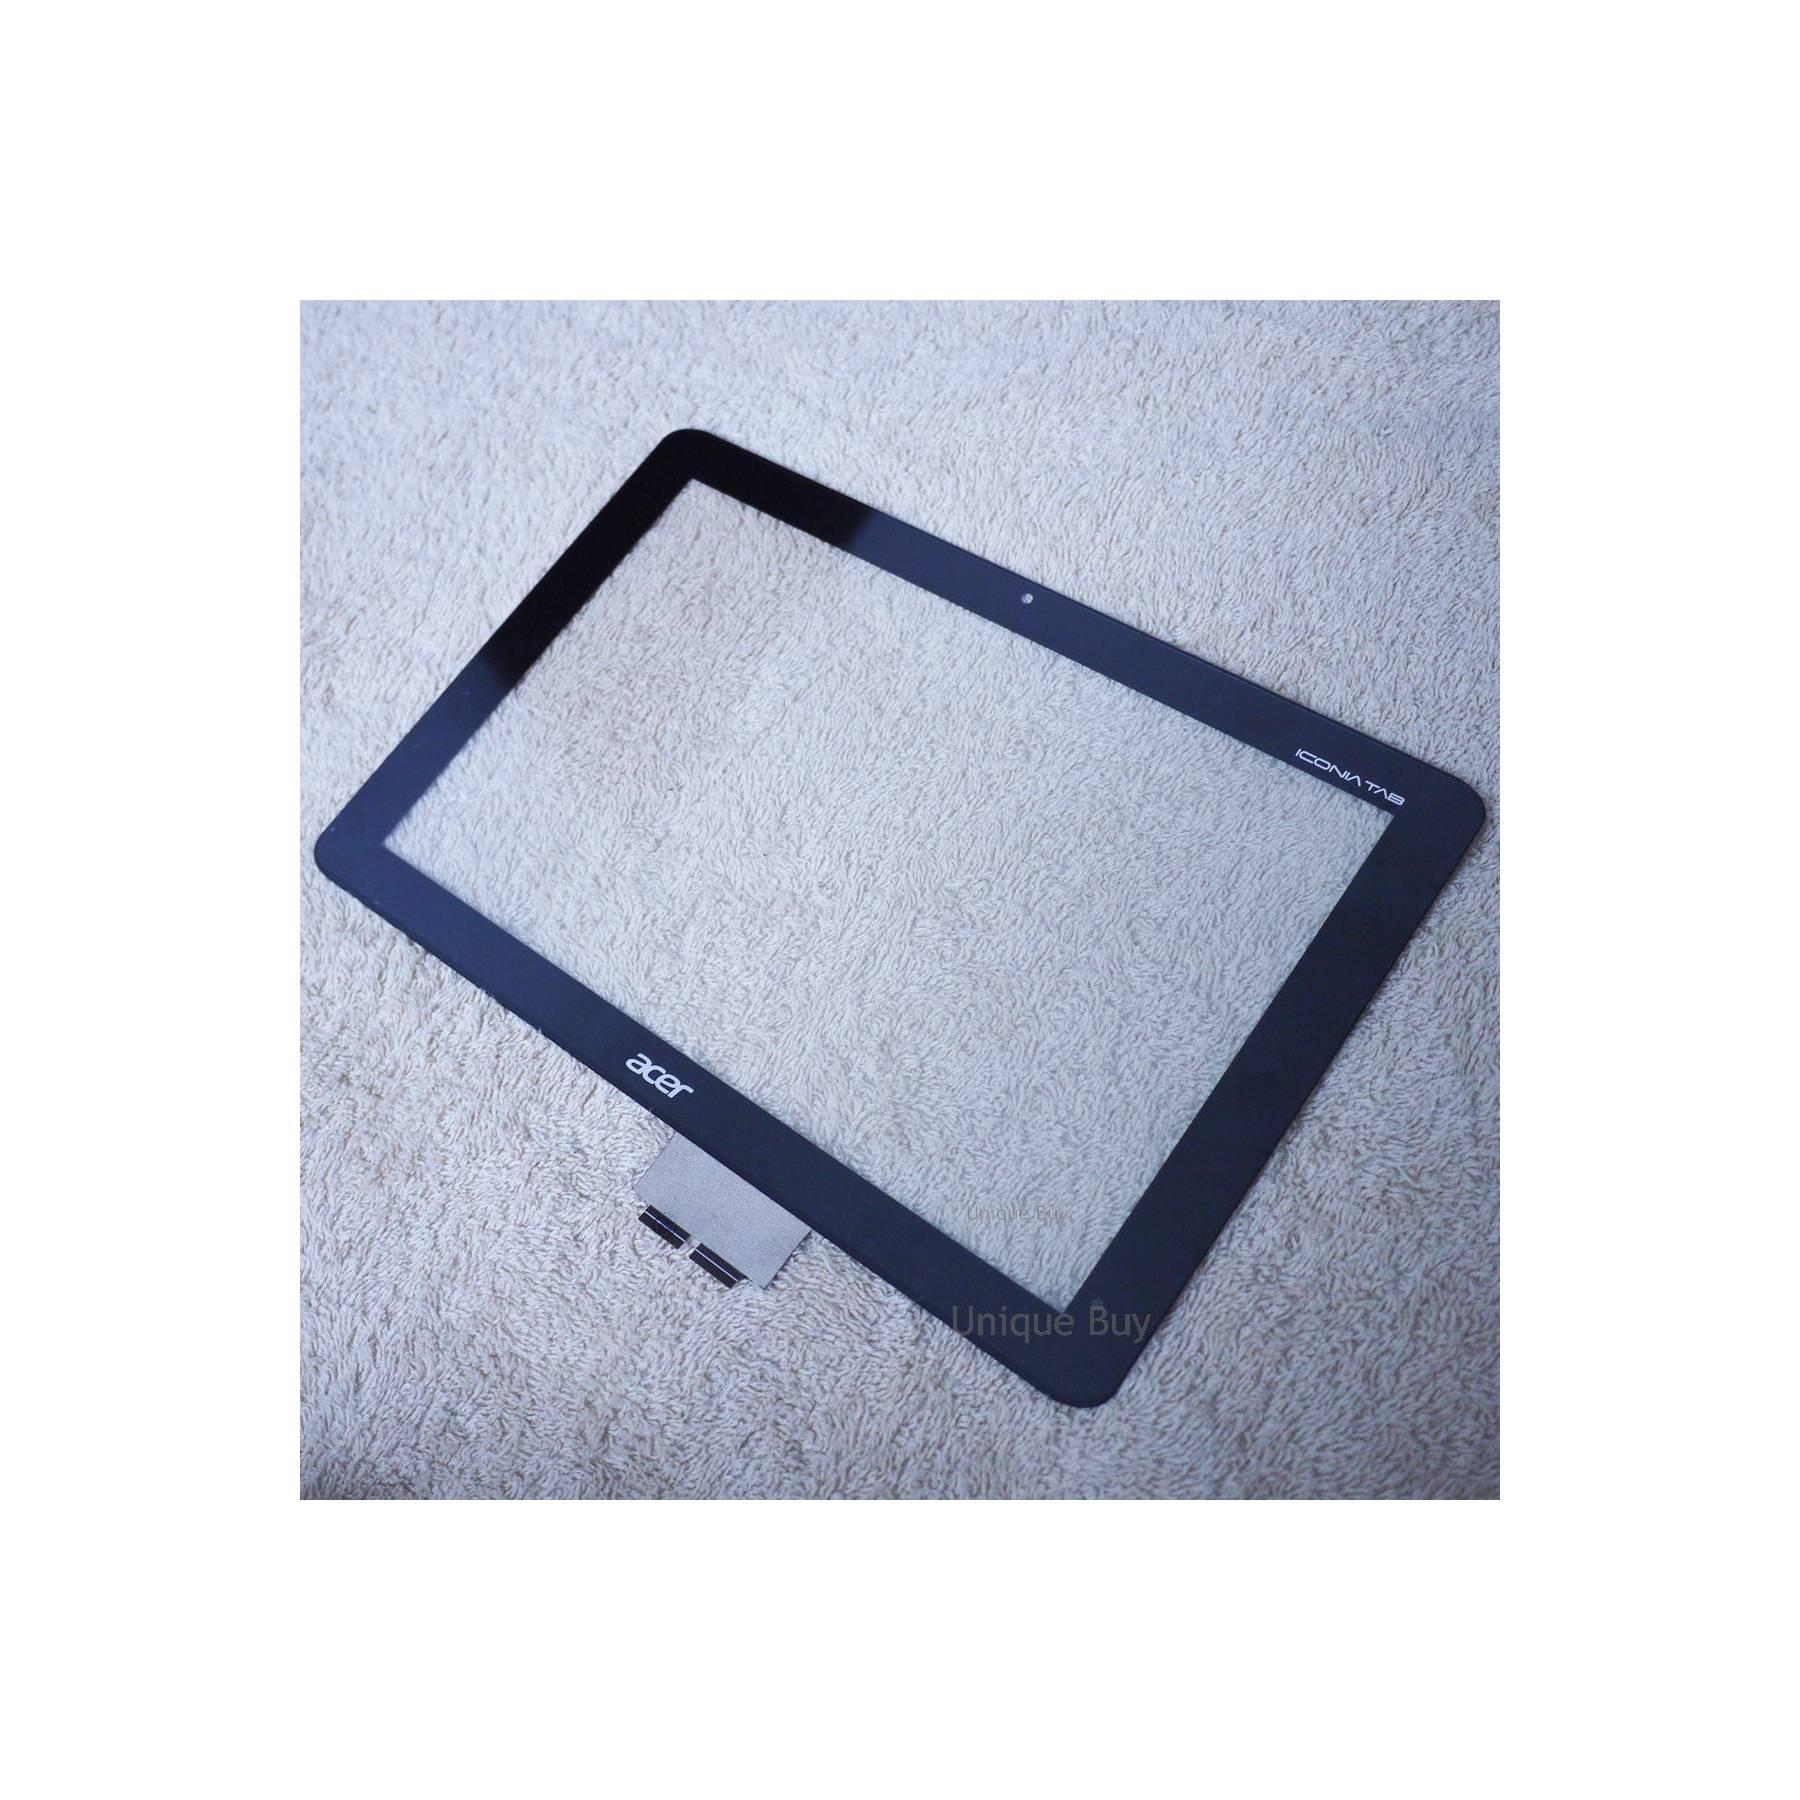 TouchScreen For Acer Iconia Tab A211 A210 10.1